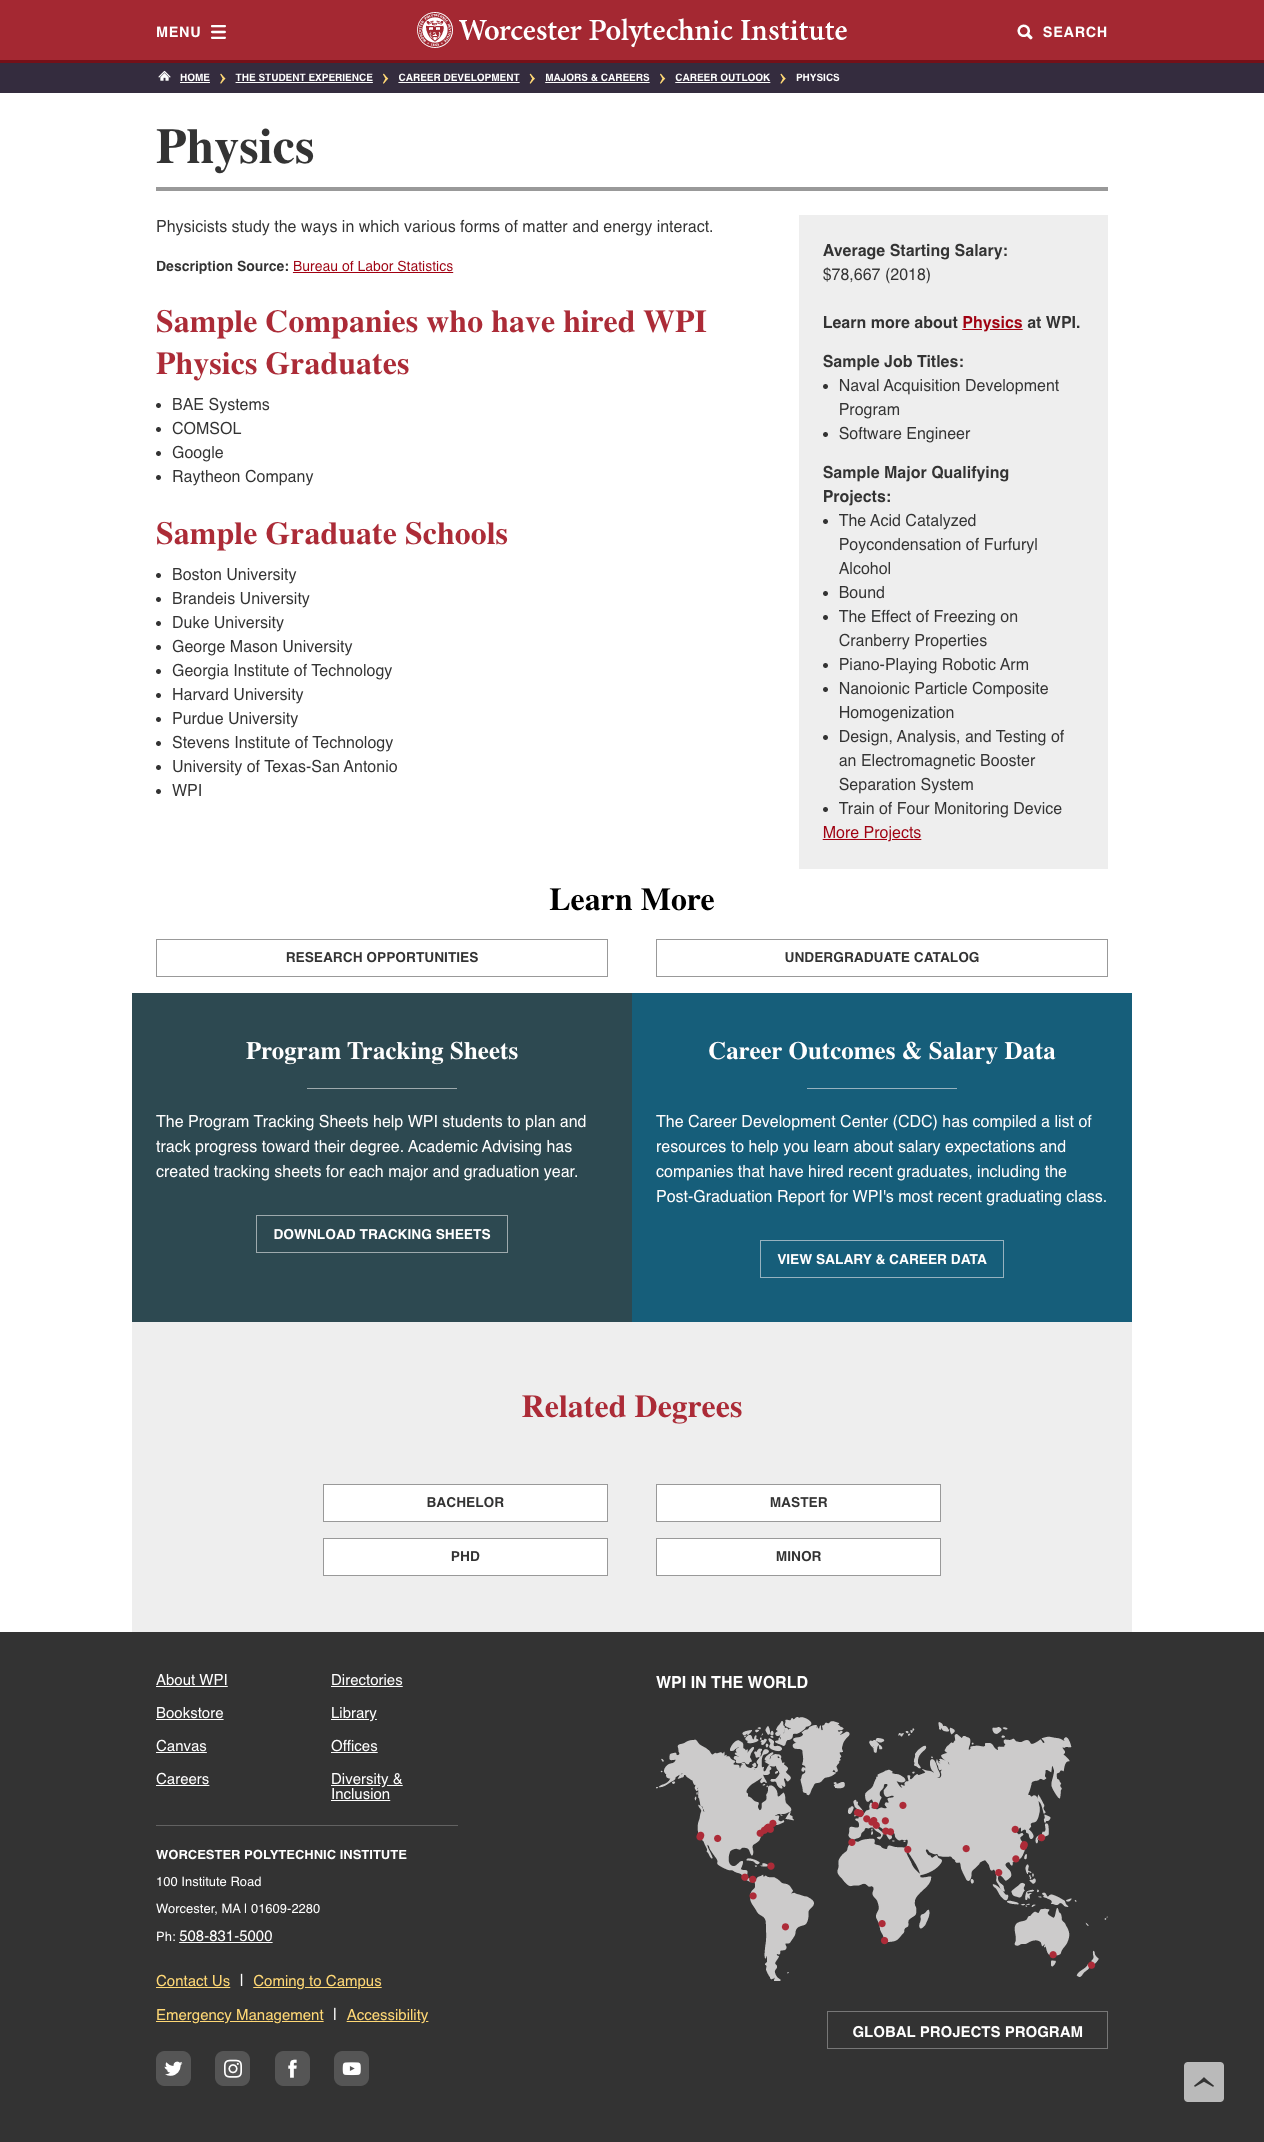 Screenshot of redesigned Career Outlook page for Physics majors